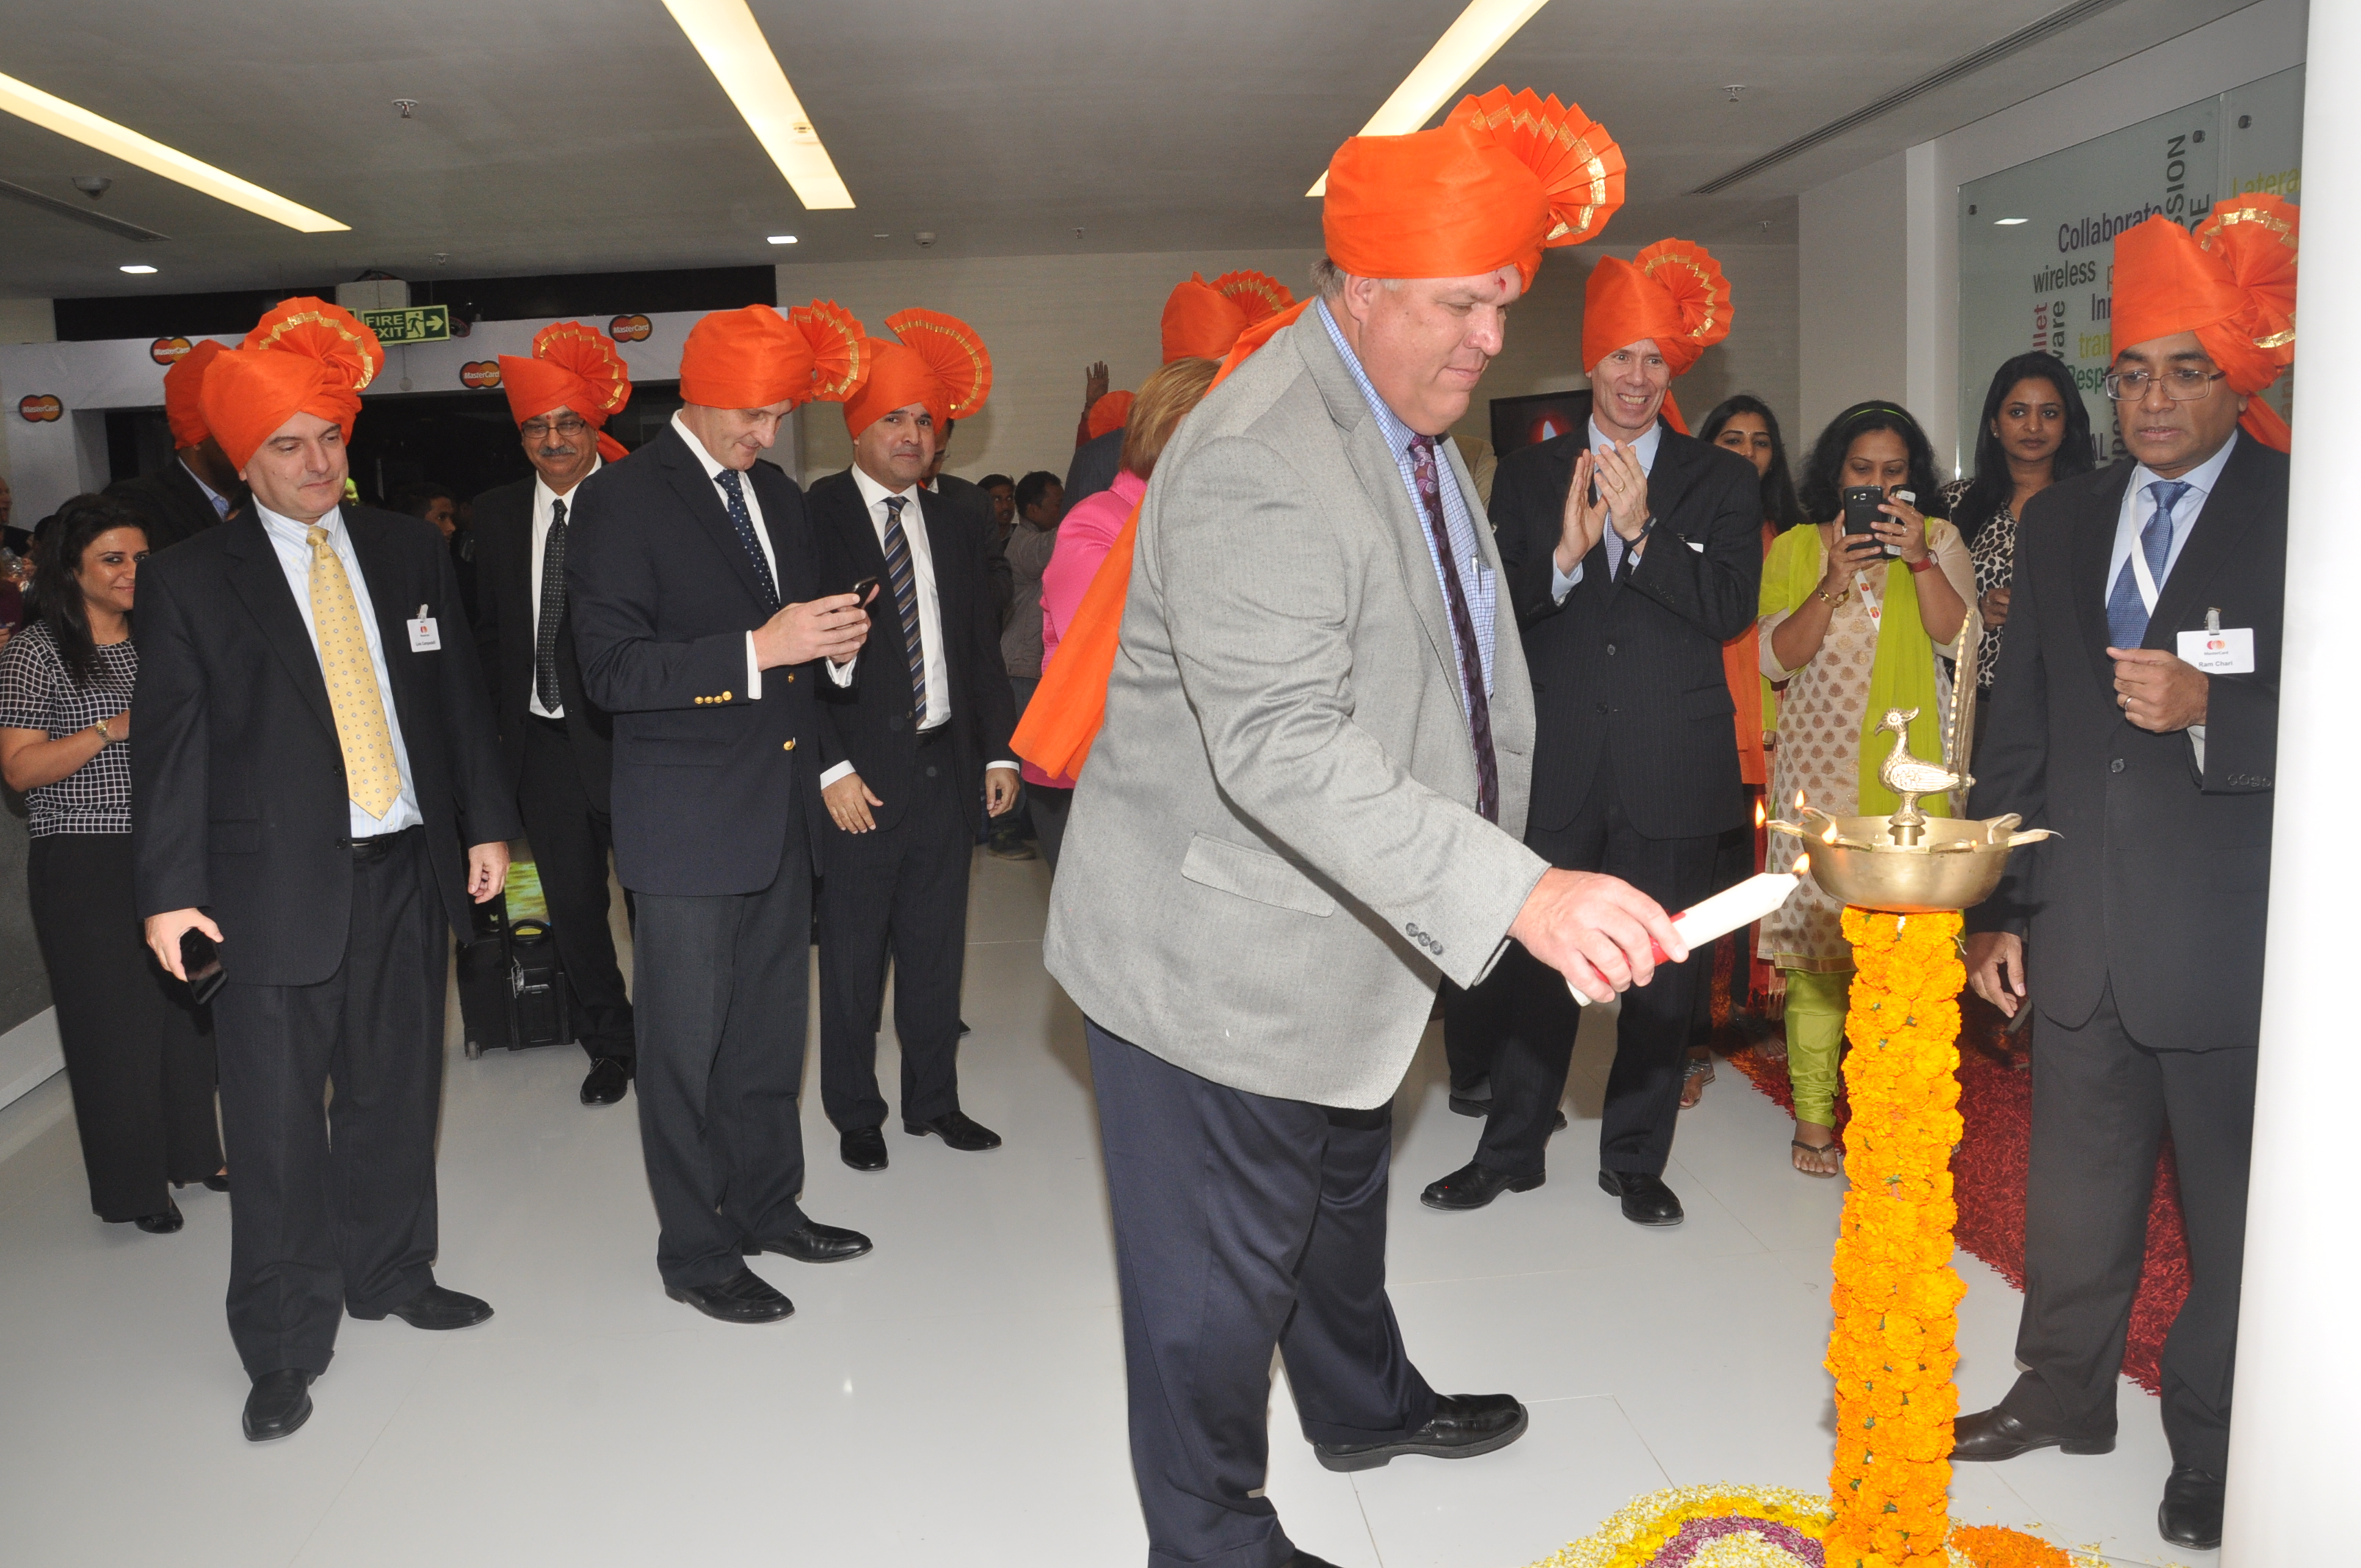 MATechHub India Launch: Lamp Lighting Ceremony | Asia Hub for Lighting Lamp Ceremony  8lpfiz